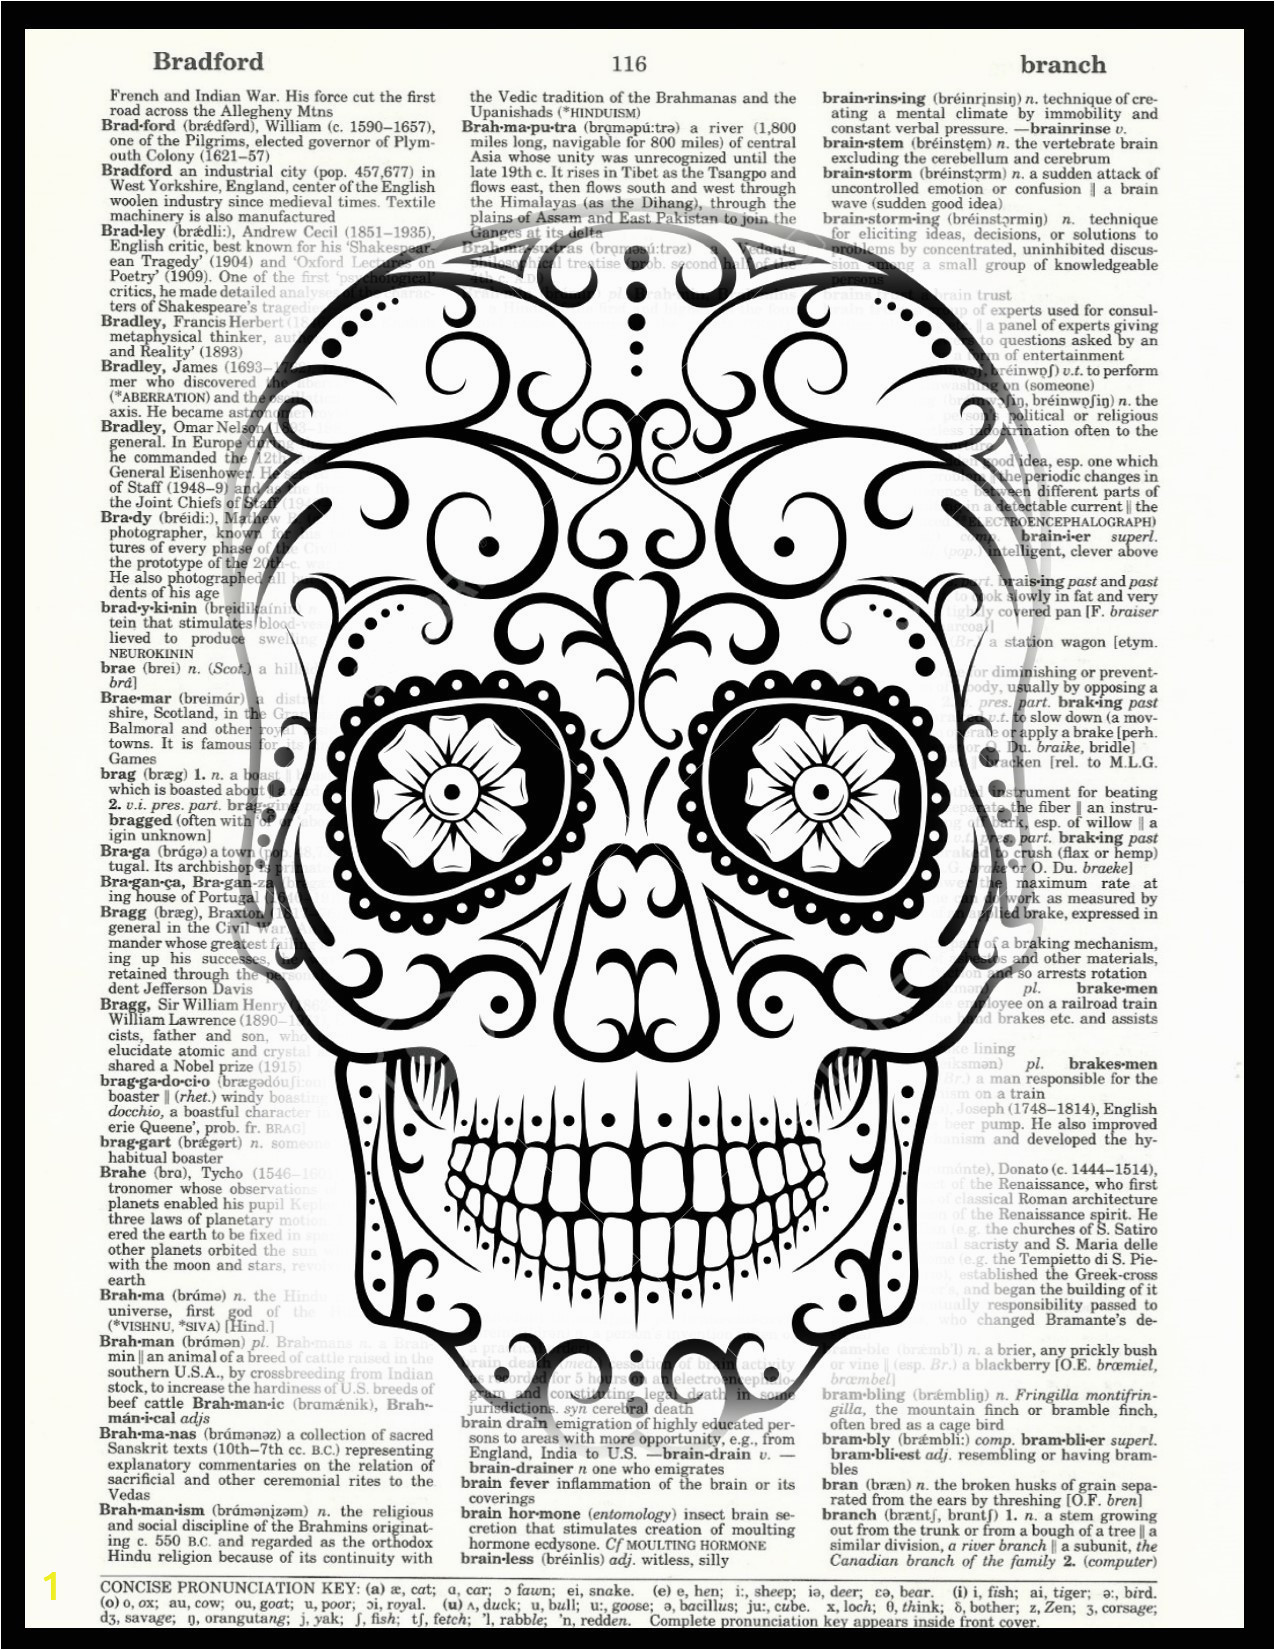 printablegar skull coloring pages for kids female book page buffalo template free design printable sugar arts anatomy unique best s dia los muertos day of the colouring